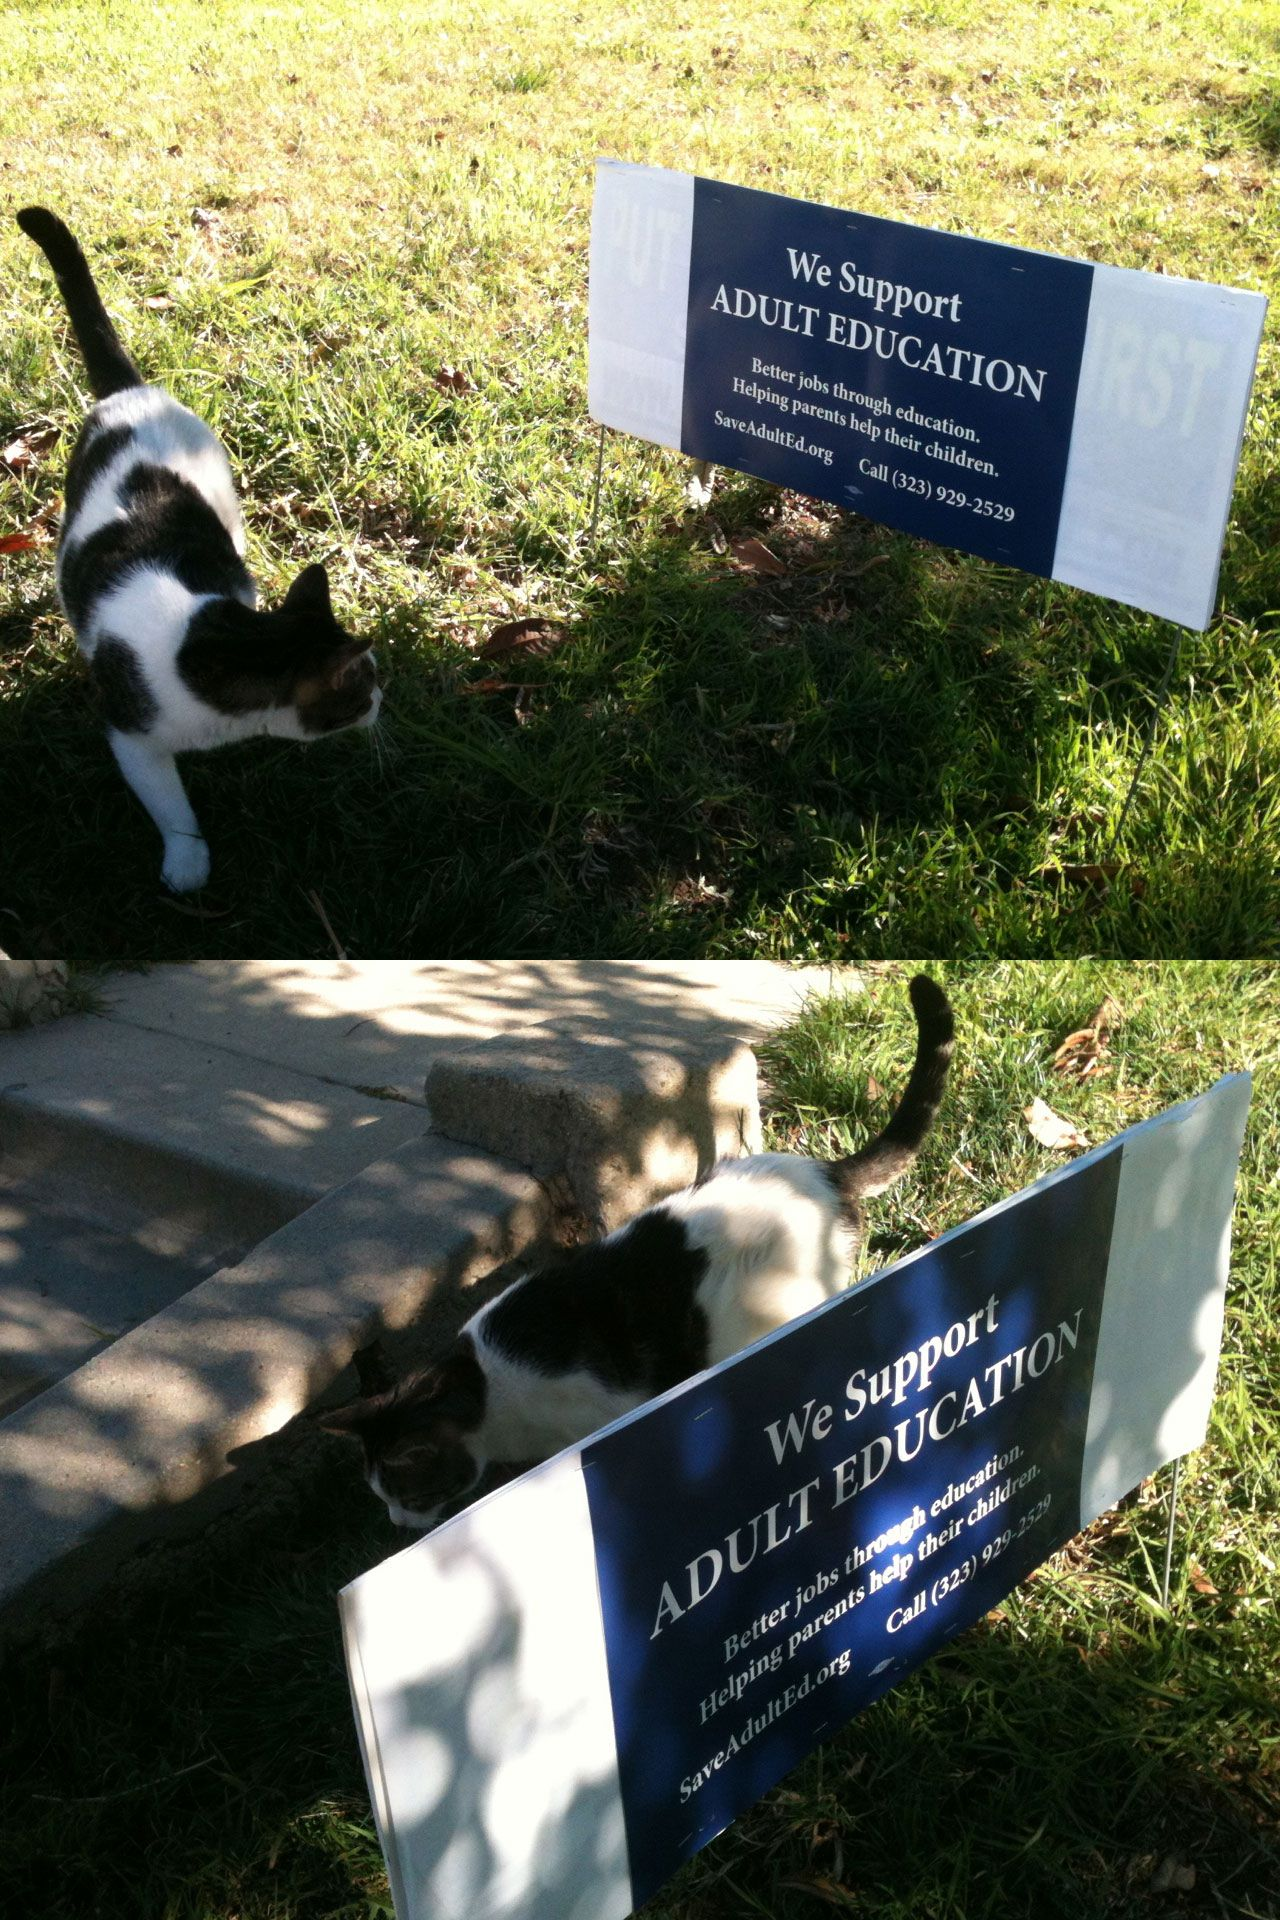 """We repurposed one of those racist """"put public safety first"""" signs into an awesome double sided """"We Support Adult Education"""" lawn sign for our front yard. One of our cats, Modo, is keeping watch over the sign."""